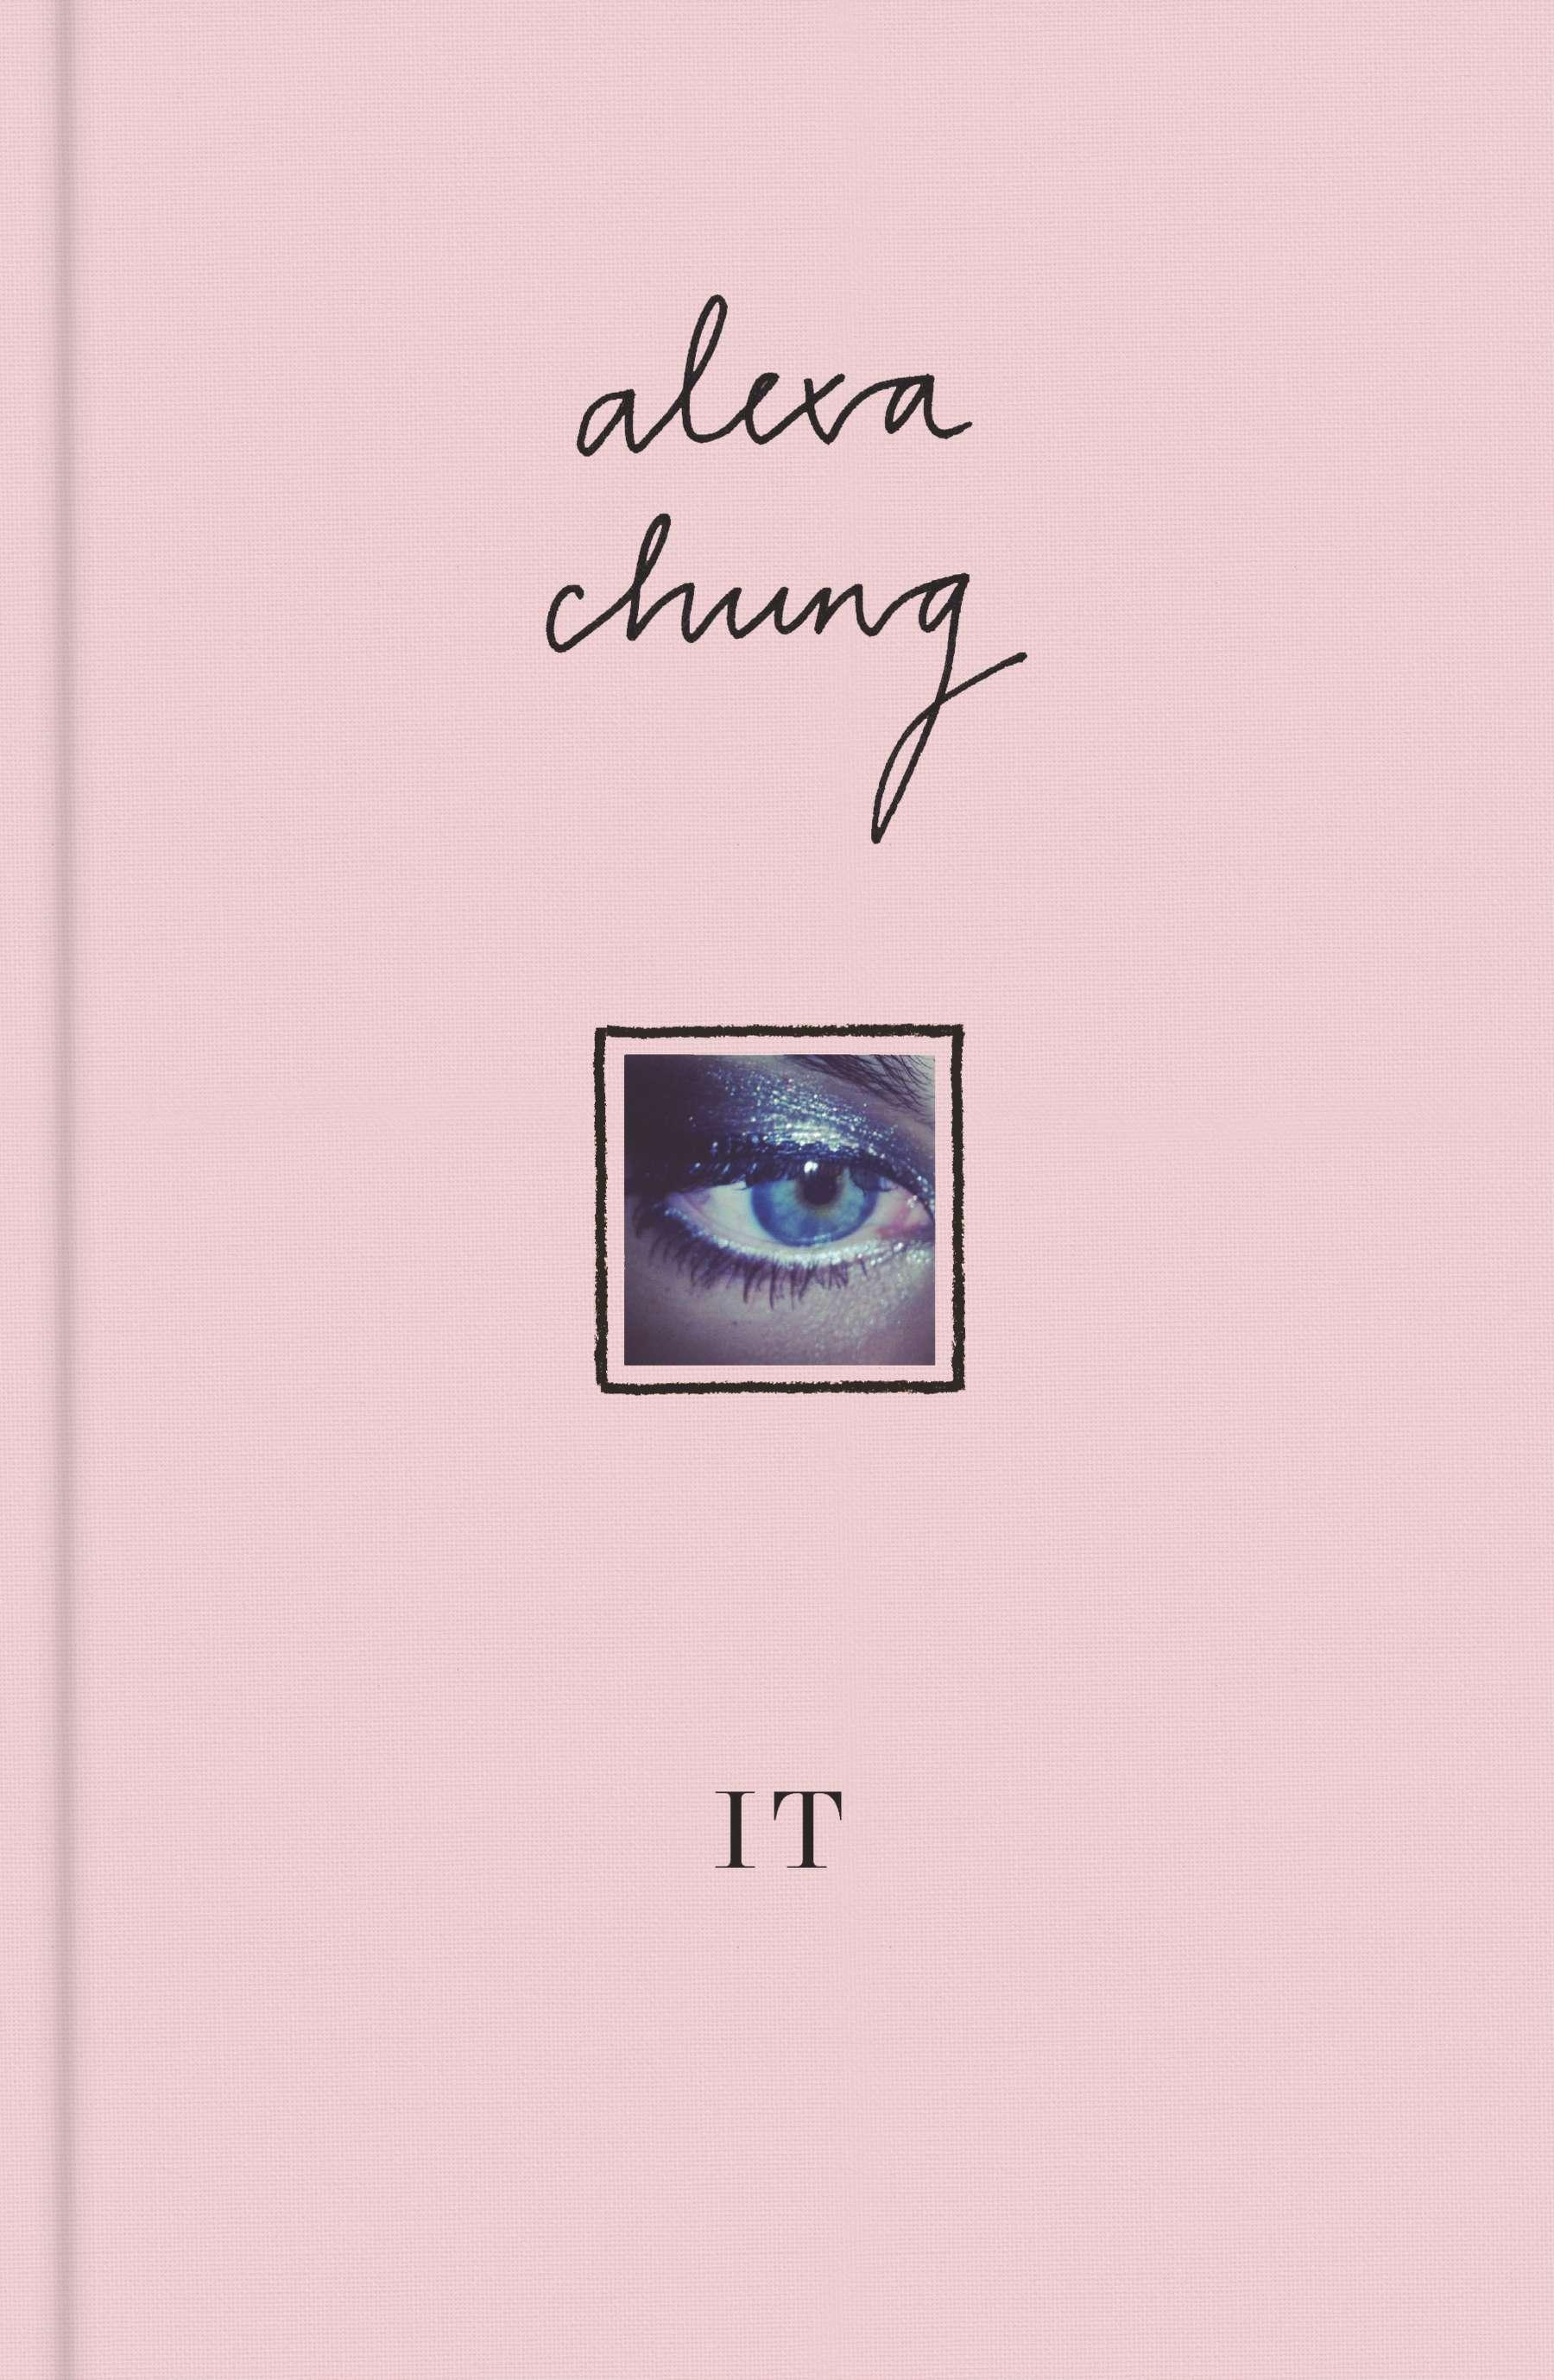 Book Launch: It by Alexa Chung, with Piera Gelardi from Refinery 29